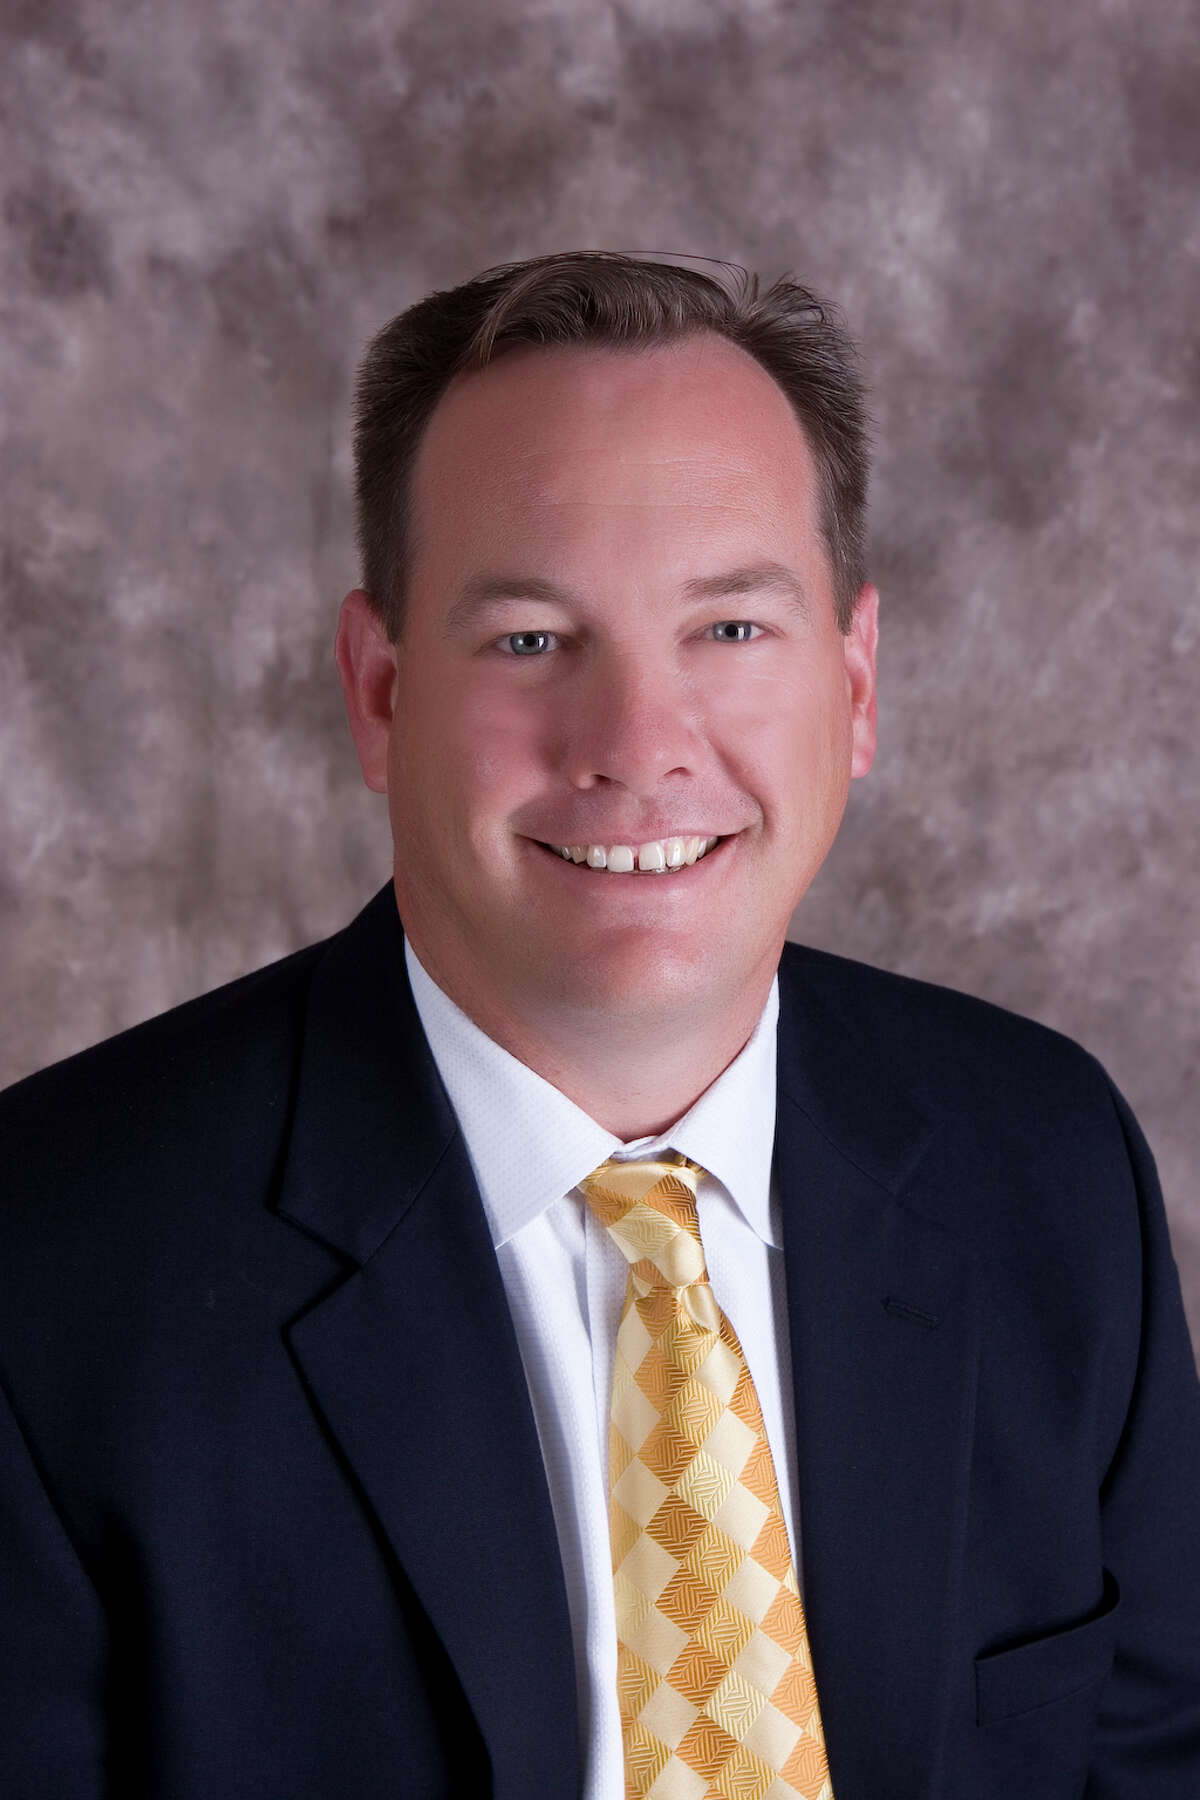 Jeff Barry is seeking election to Pearland ISD's Position 7.